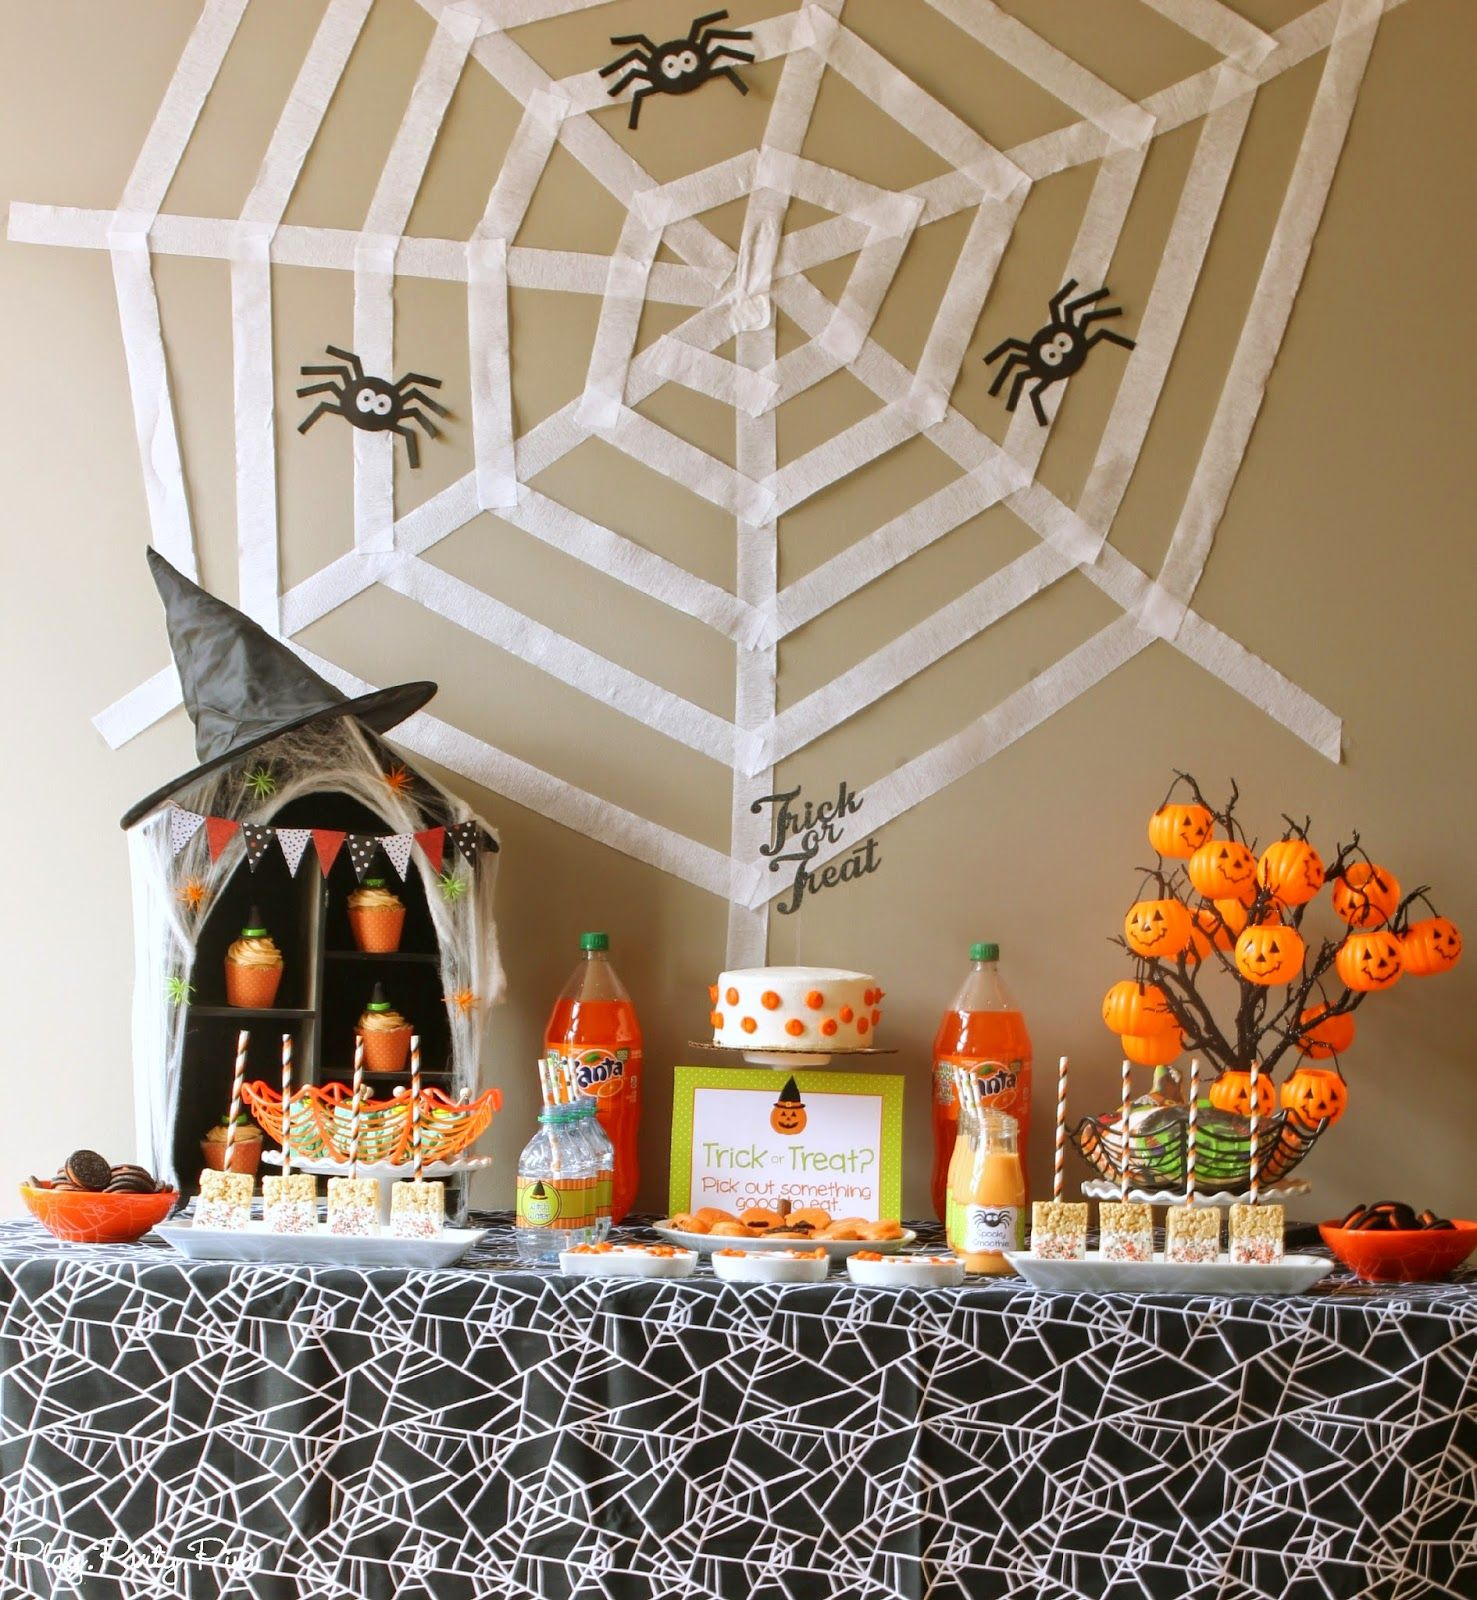 Amazing Halloween Party Ideas Including A Diy Spiderweb Backdrop And